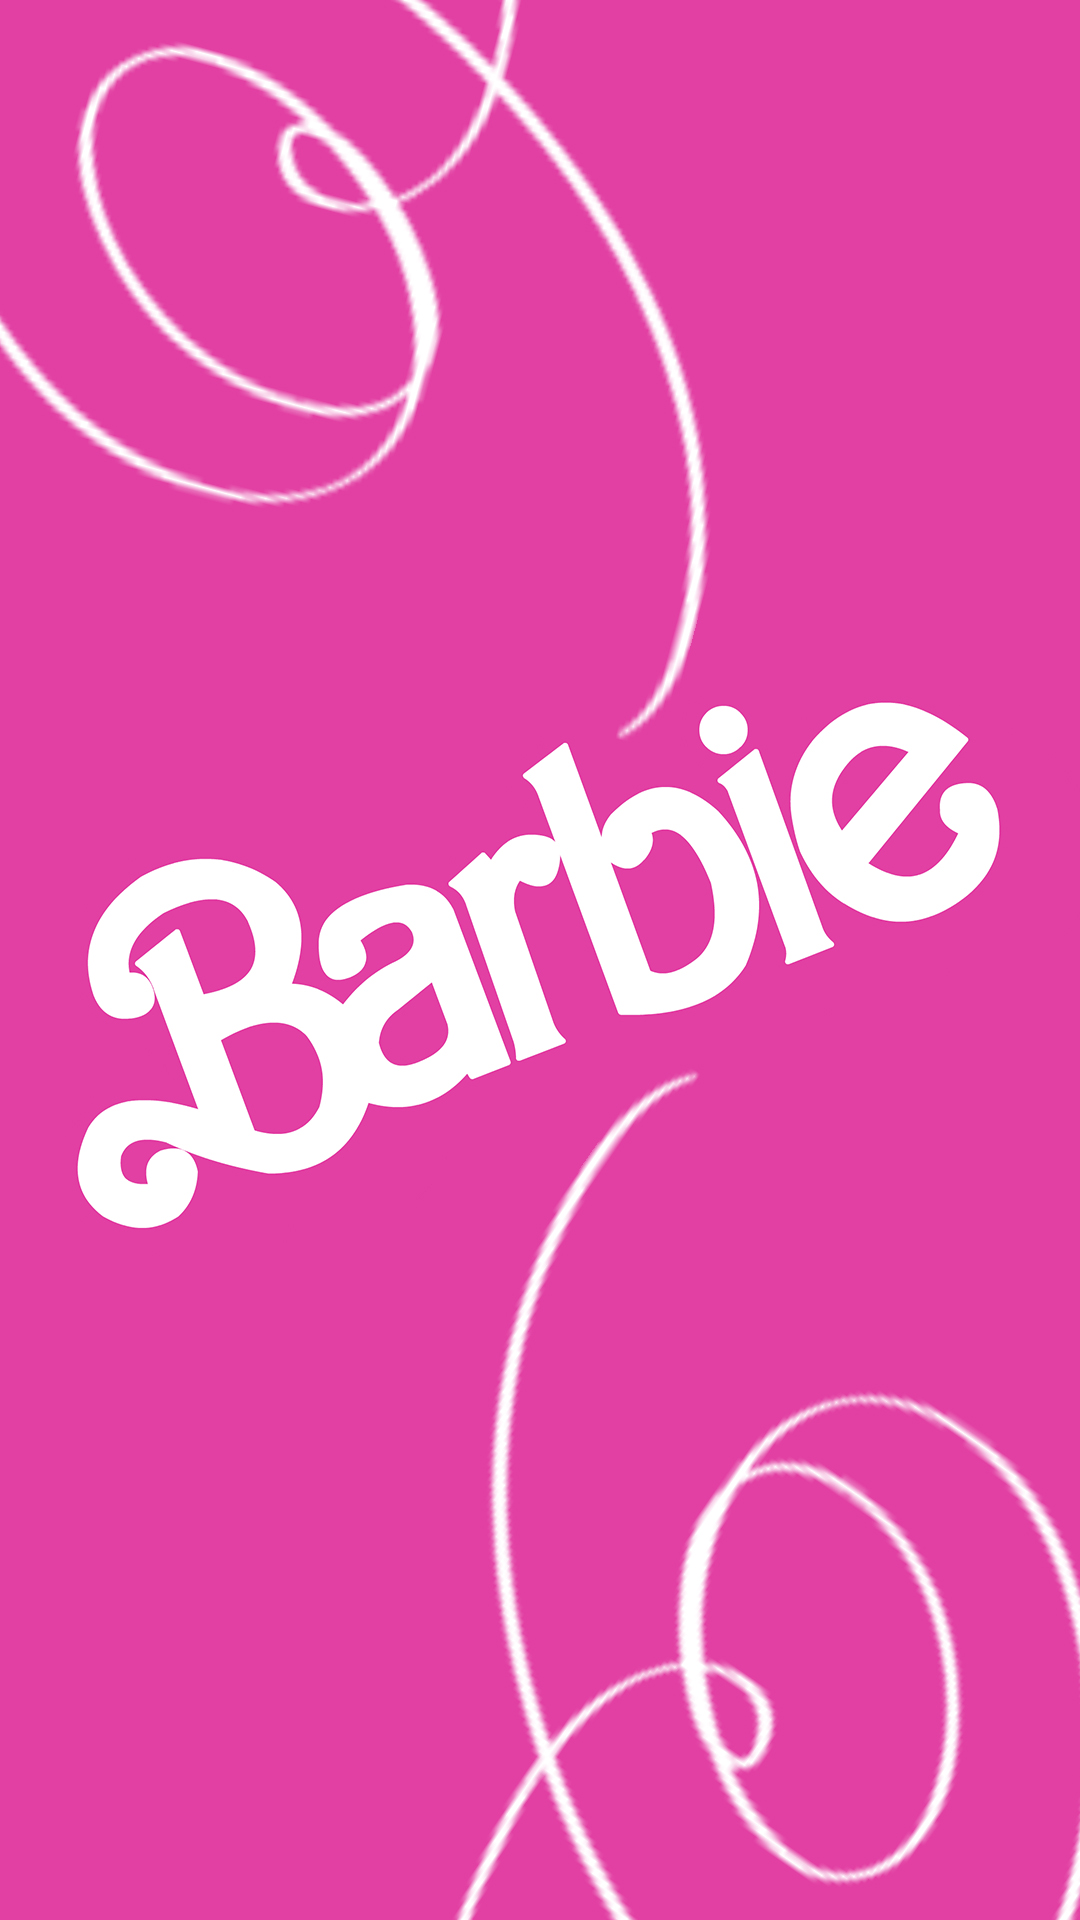 Free hd barbie phone wallpaper5587 barbie phone wallpaper voltagebd Gallery